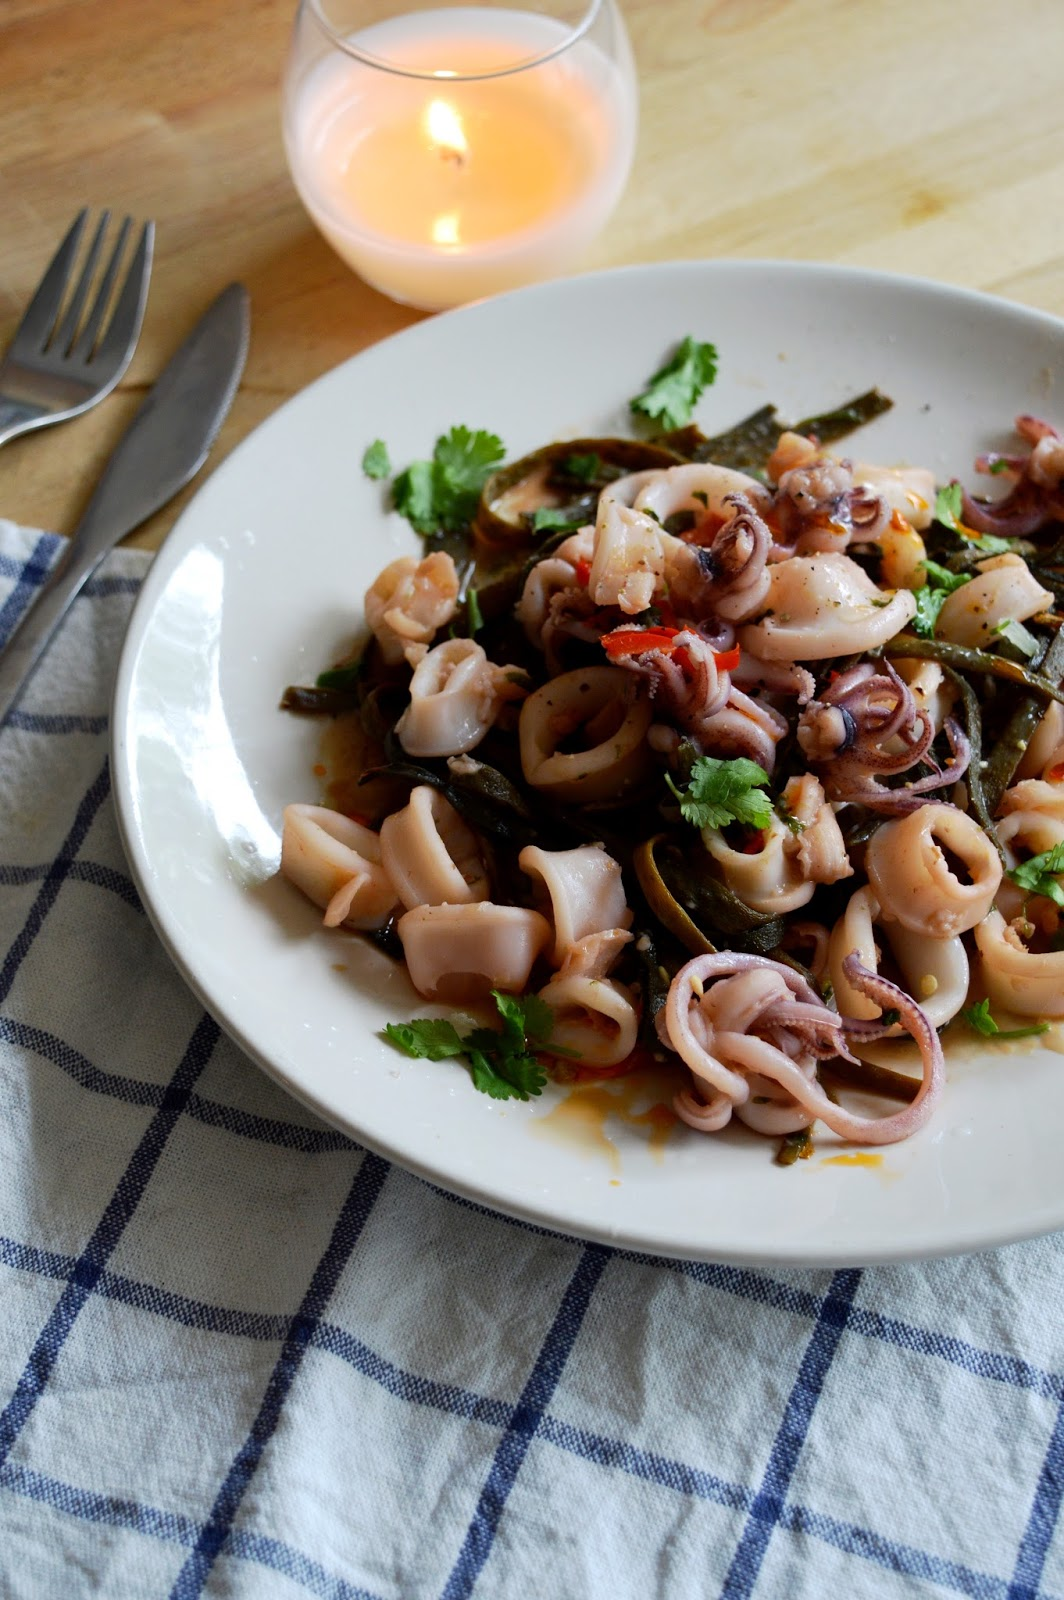 I Sea Pasta review, squid and seaweed pasta recipe, UK food blog, food bloggers